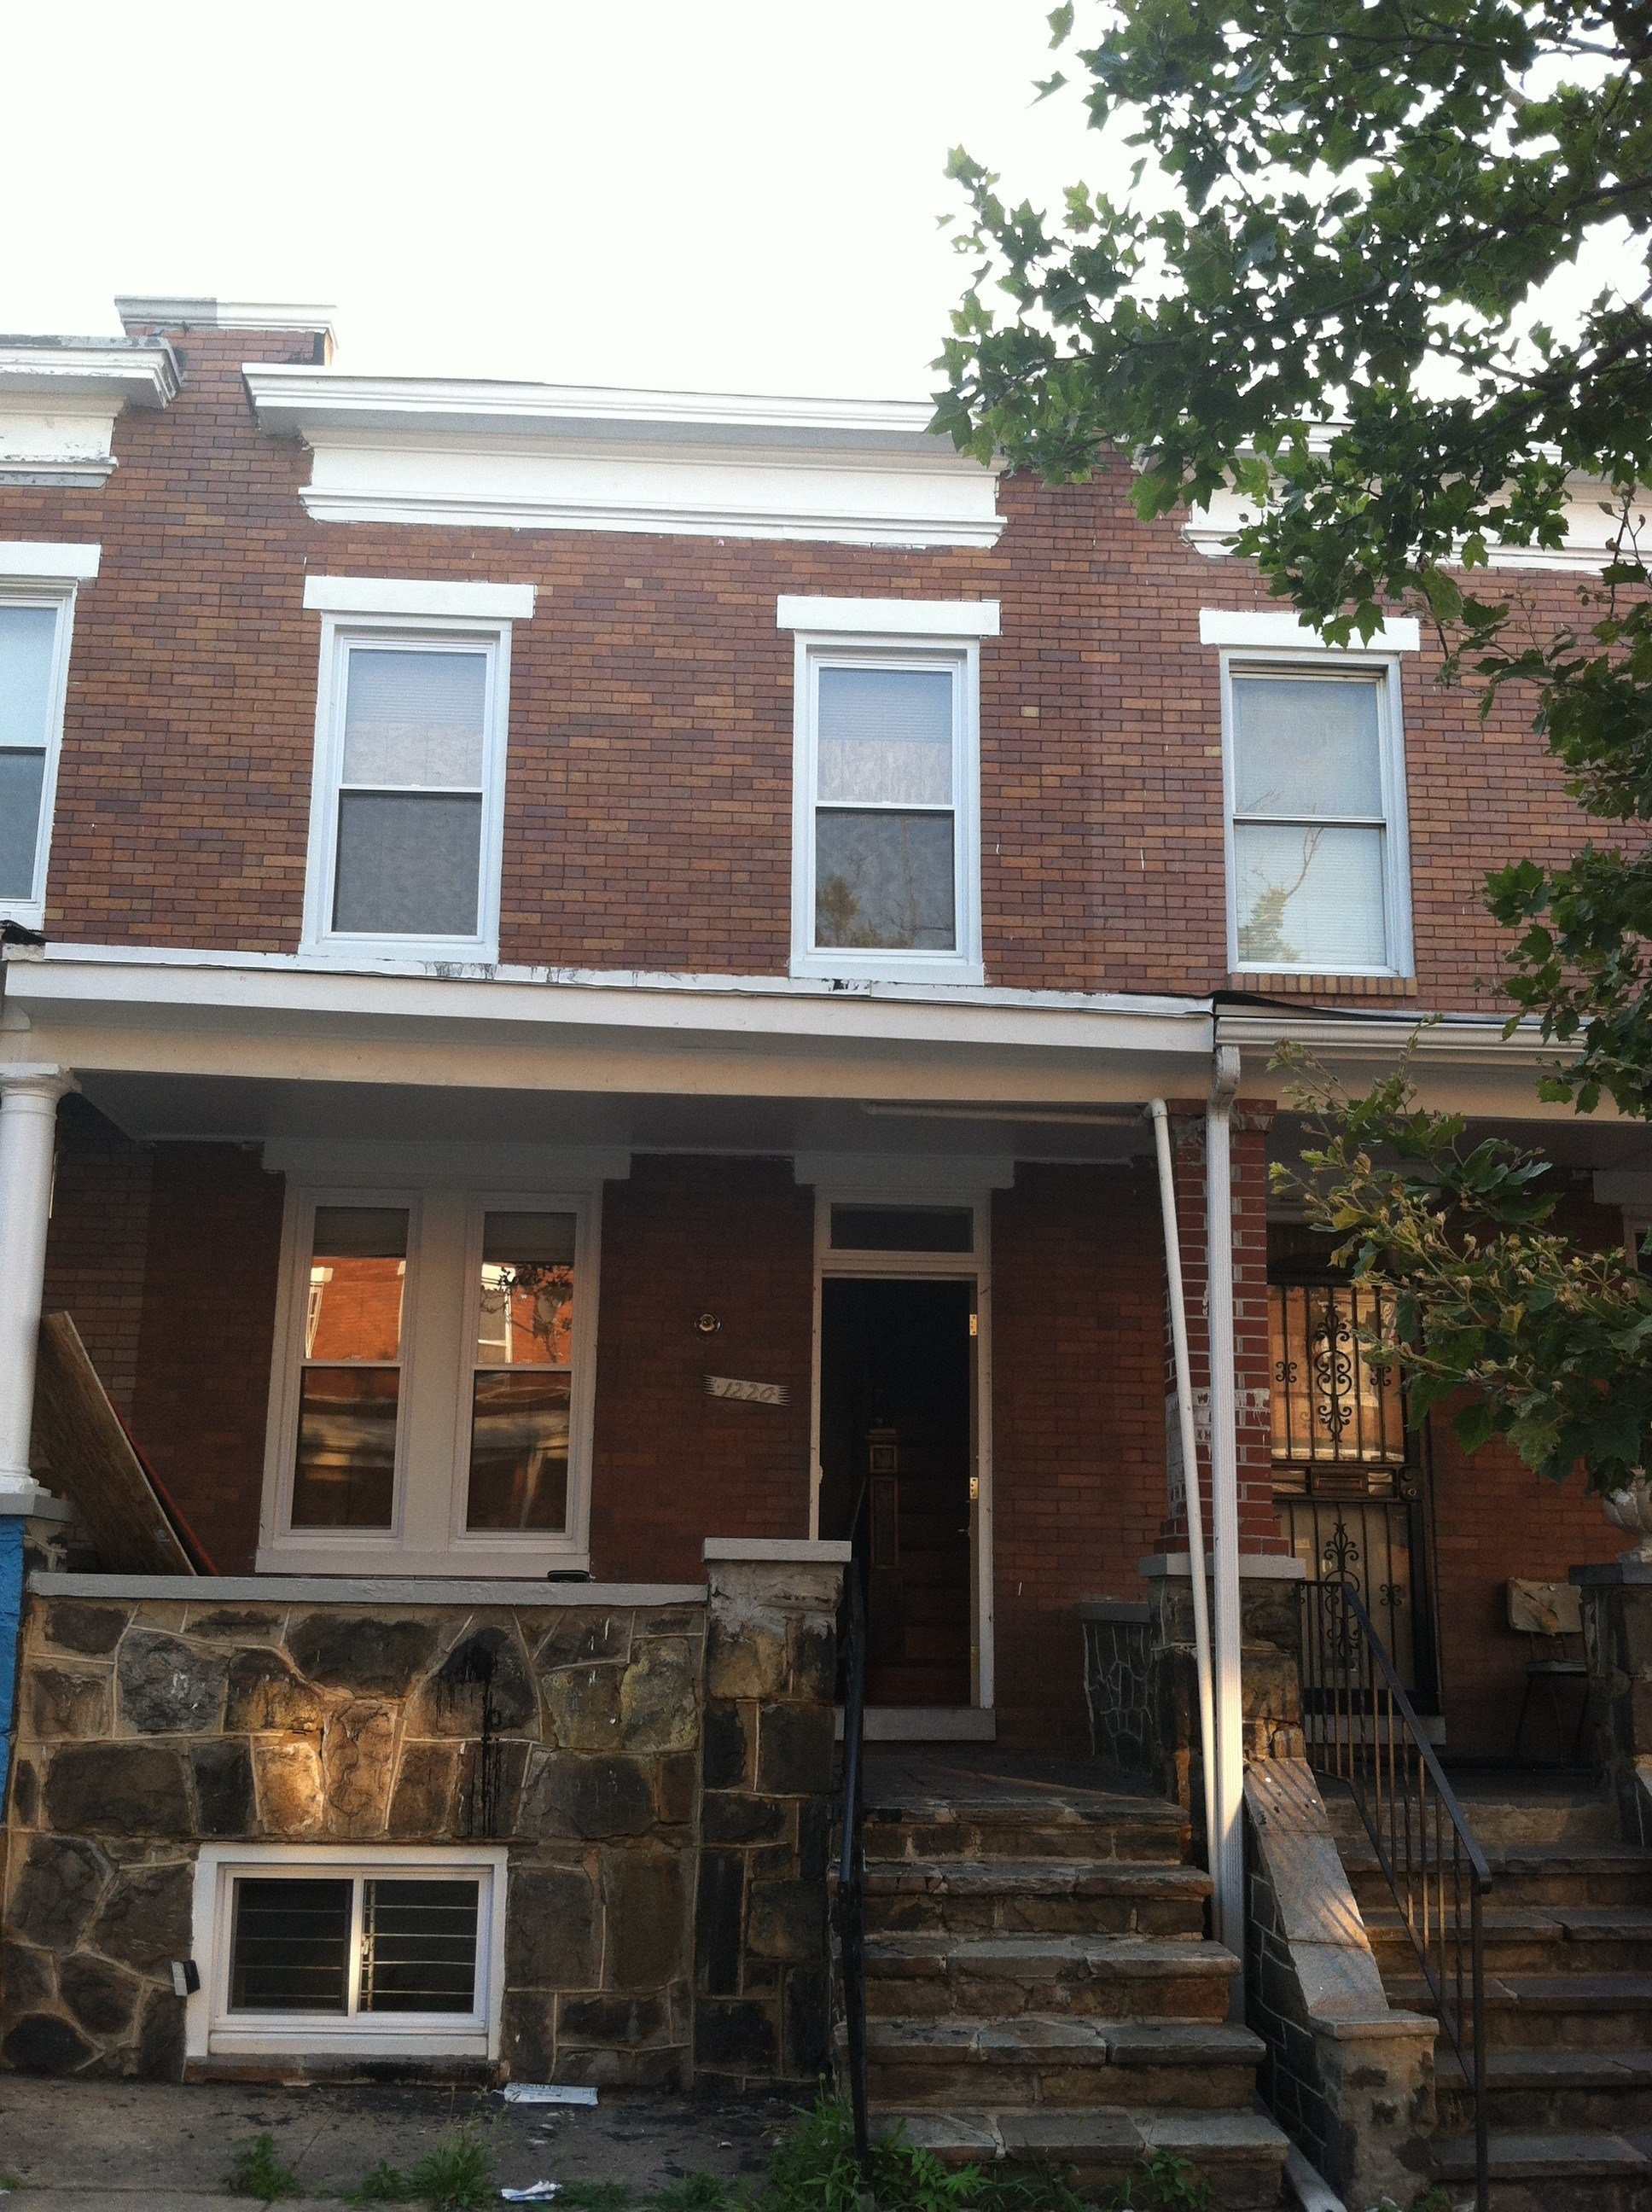 Best 509 N Belnord Ave Baltimore Md 21205 3 Bedroom With Pictures